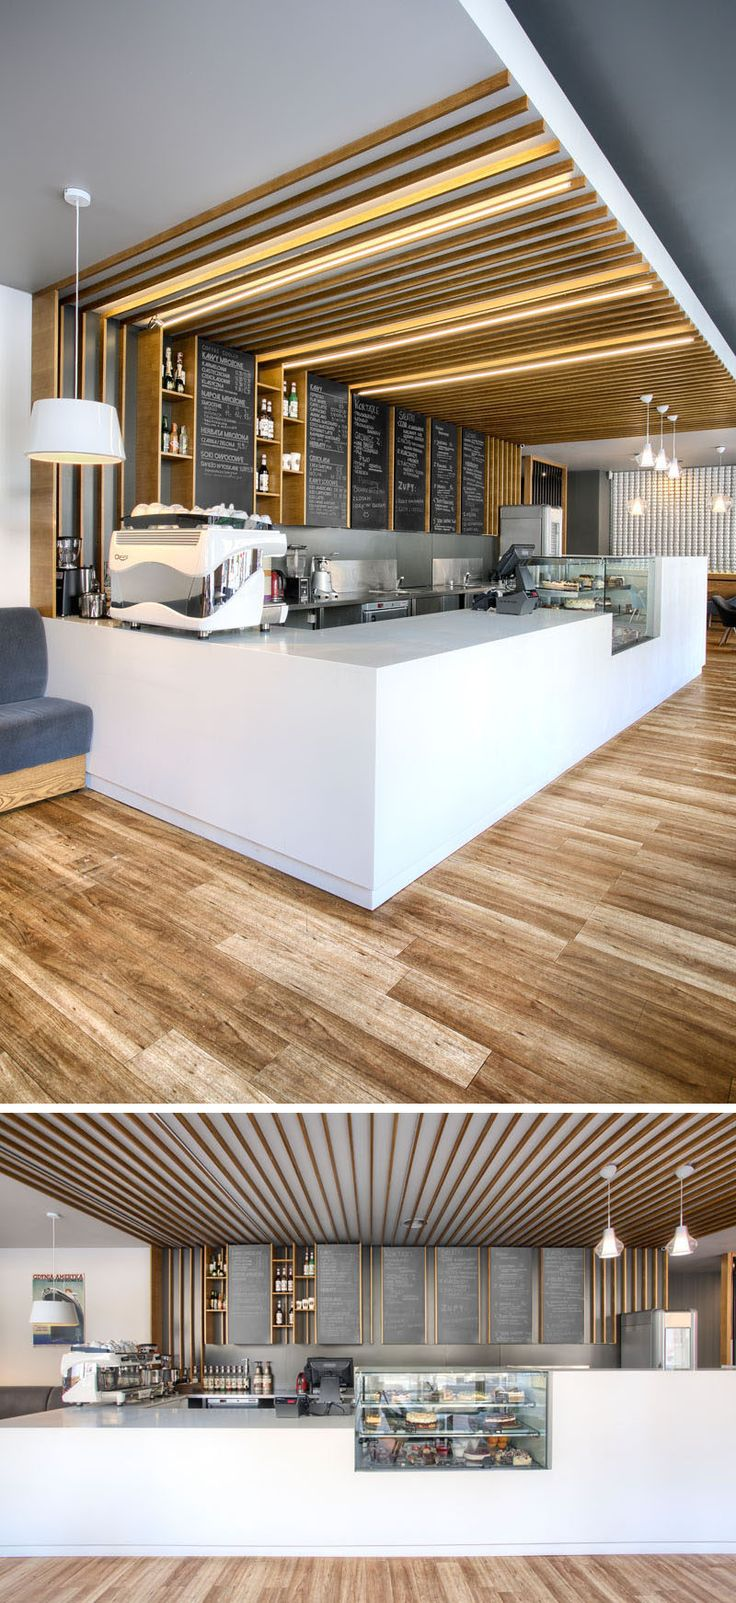 this cafe service counter mixes white counters with glass wood detailing and chalkboards hidden lighting runs overhead along the the wooden details - Glass Front Cafe 2015